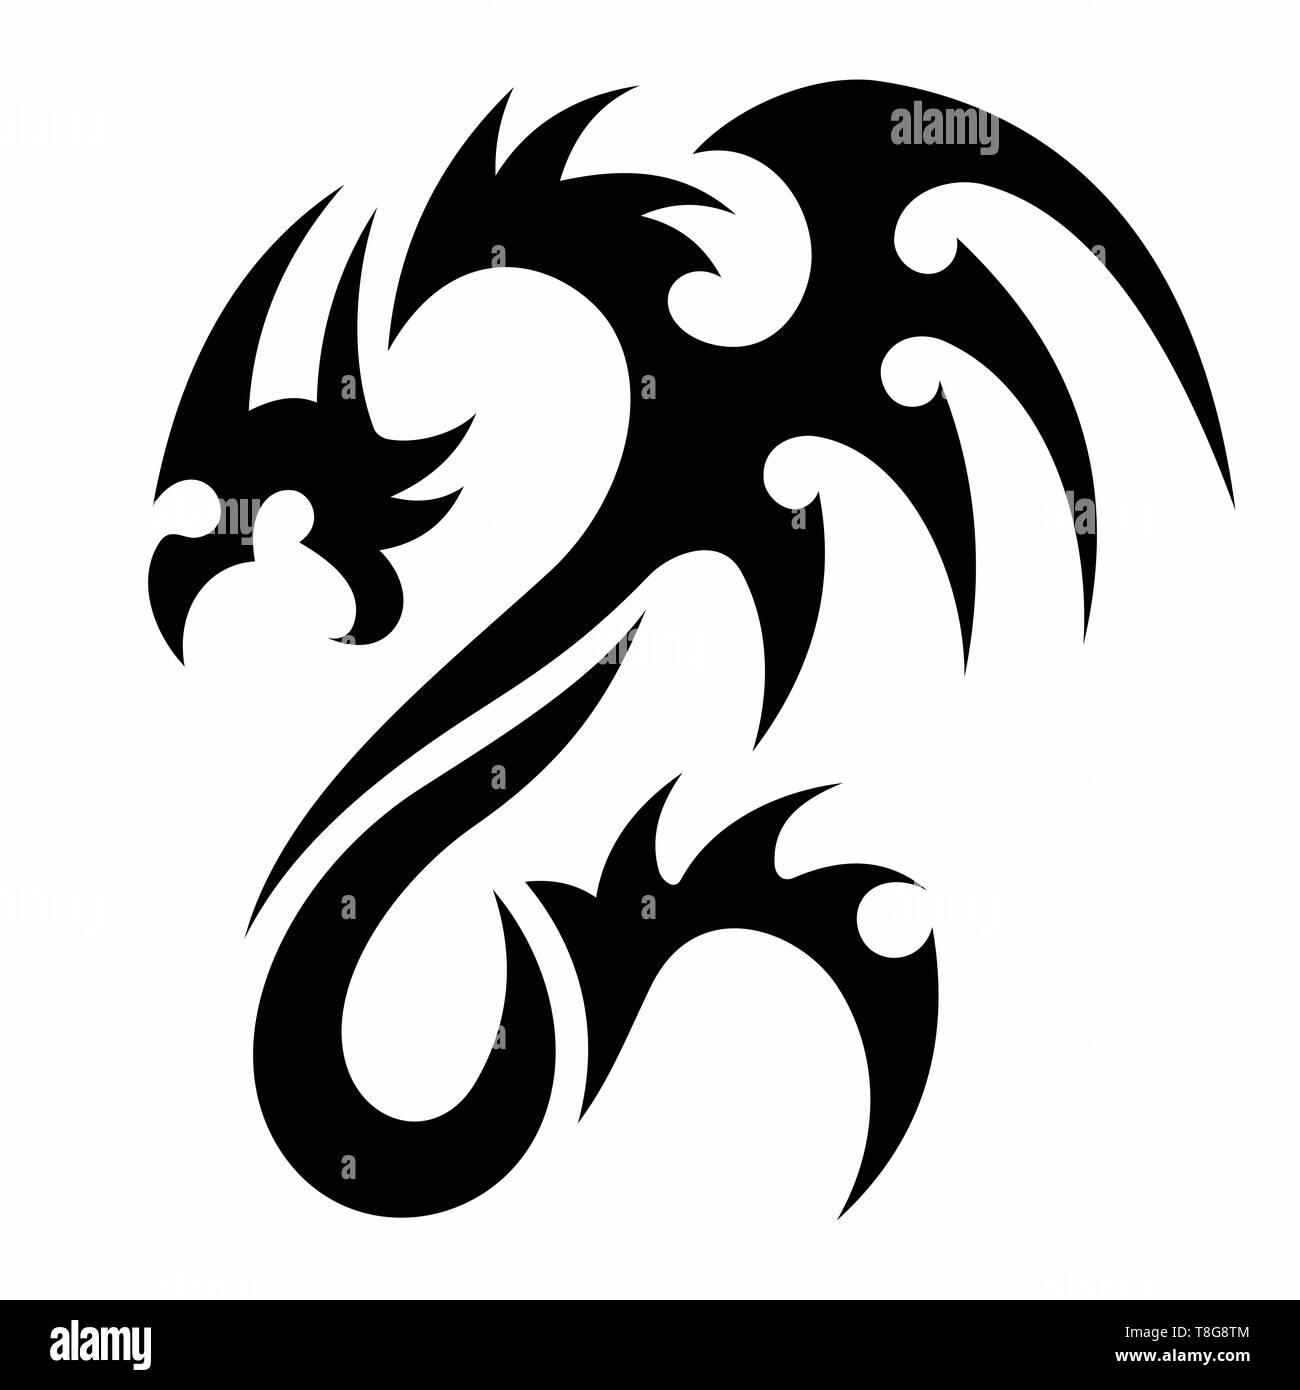 Dragon Vectors For Tattoo Designs T Shirt Designs Logos Symbols Easy To Apply Stock Vector Image Art Alamy